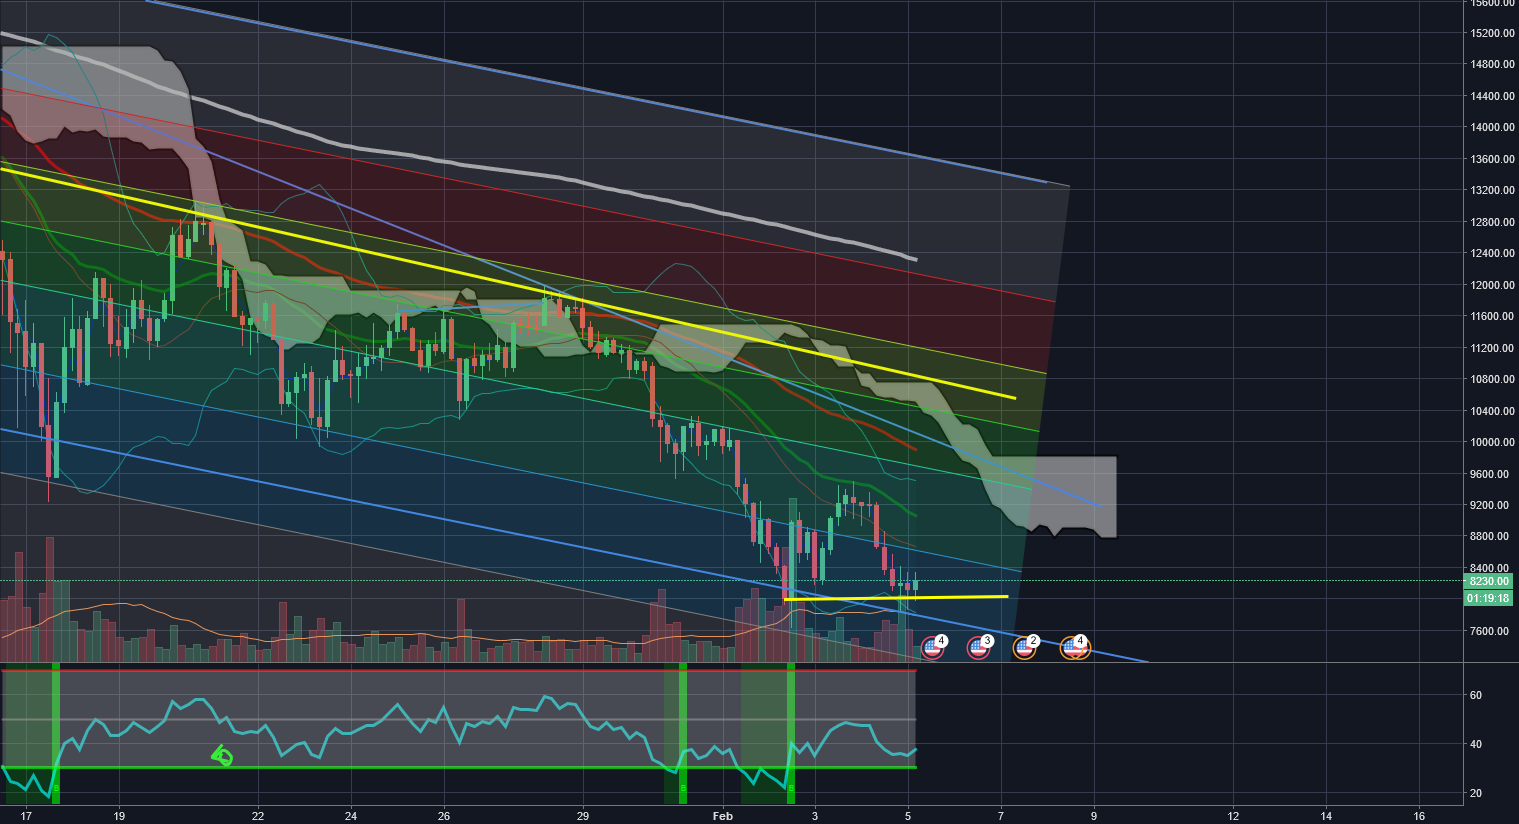 Double Bottom BTC 4hr